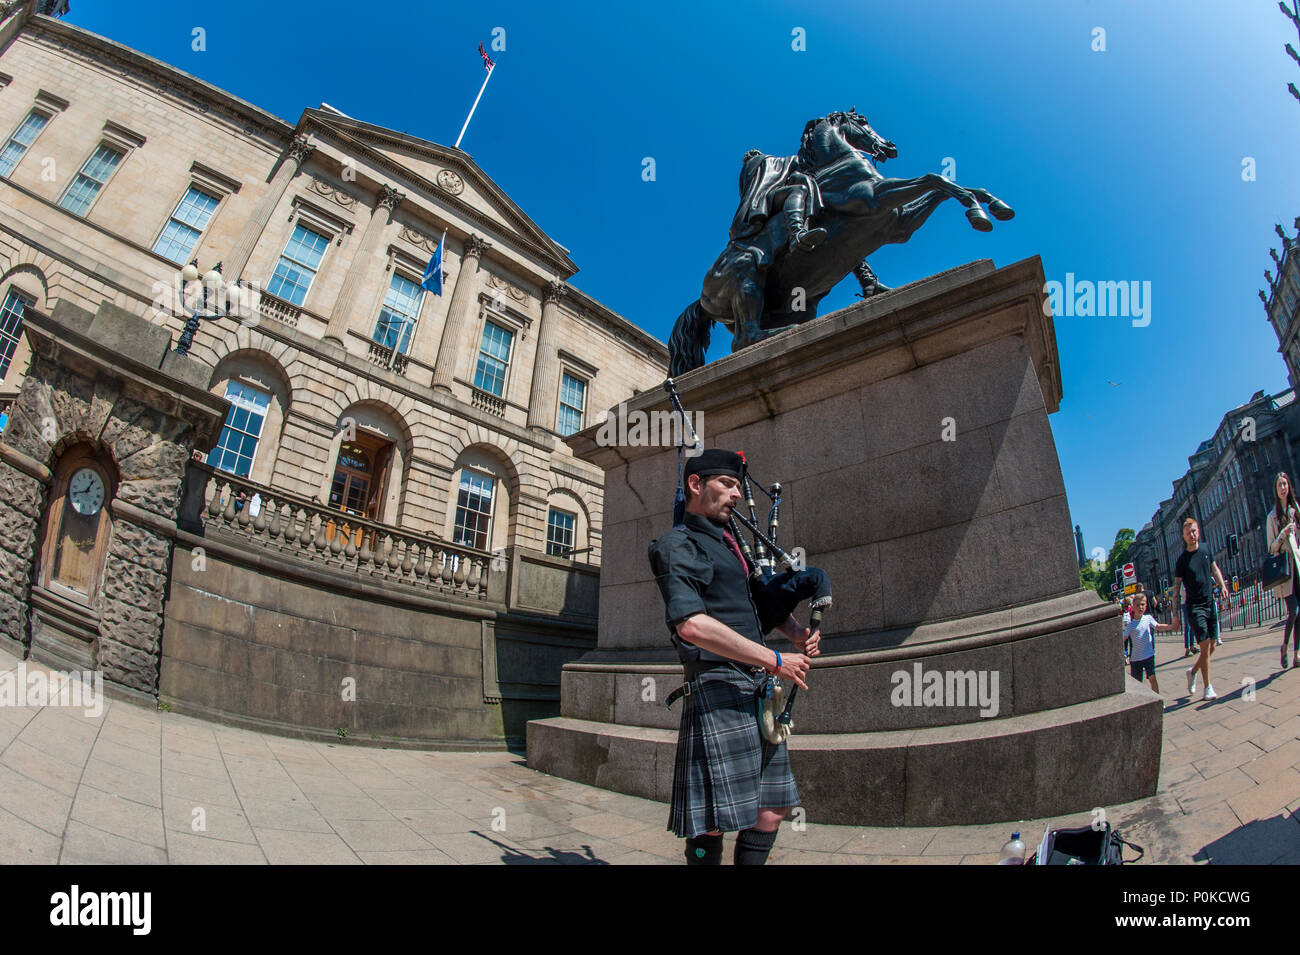 Remembering D Day Bill Millin Mad Piper Whose: Piper Statue Stock Photos & Piper Statue Stock Images